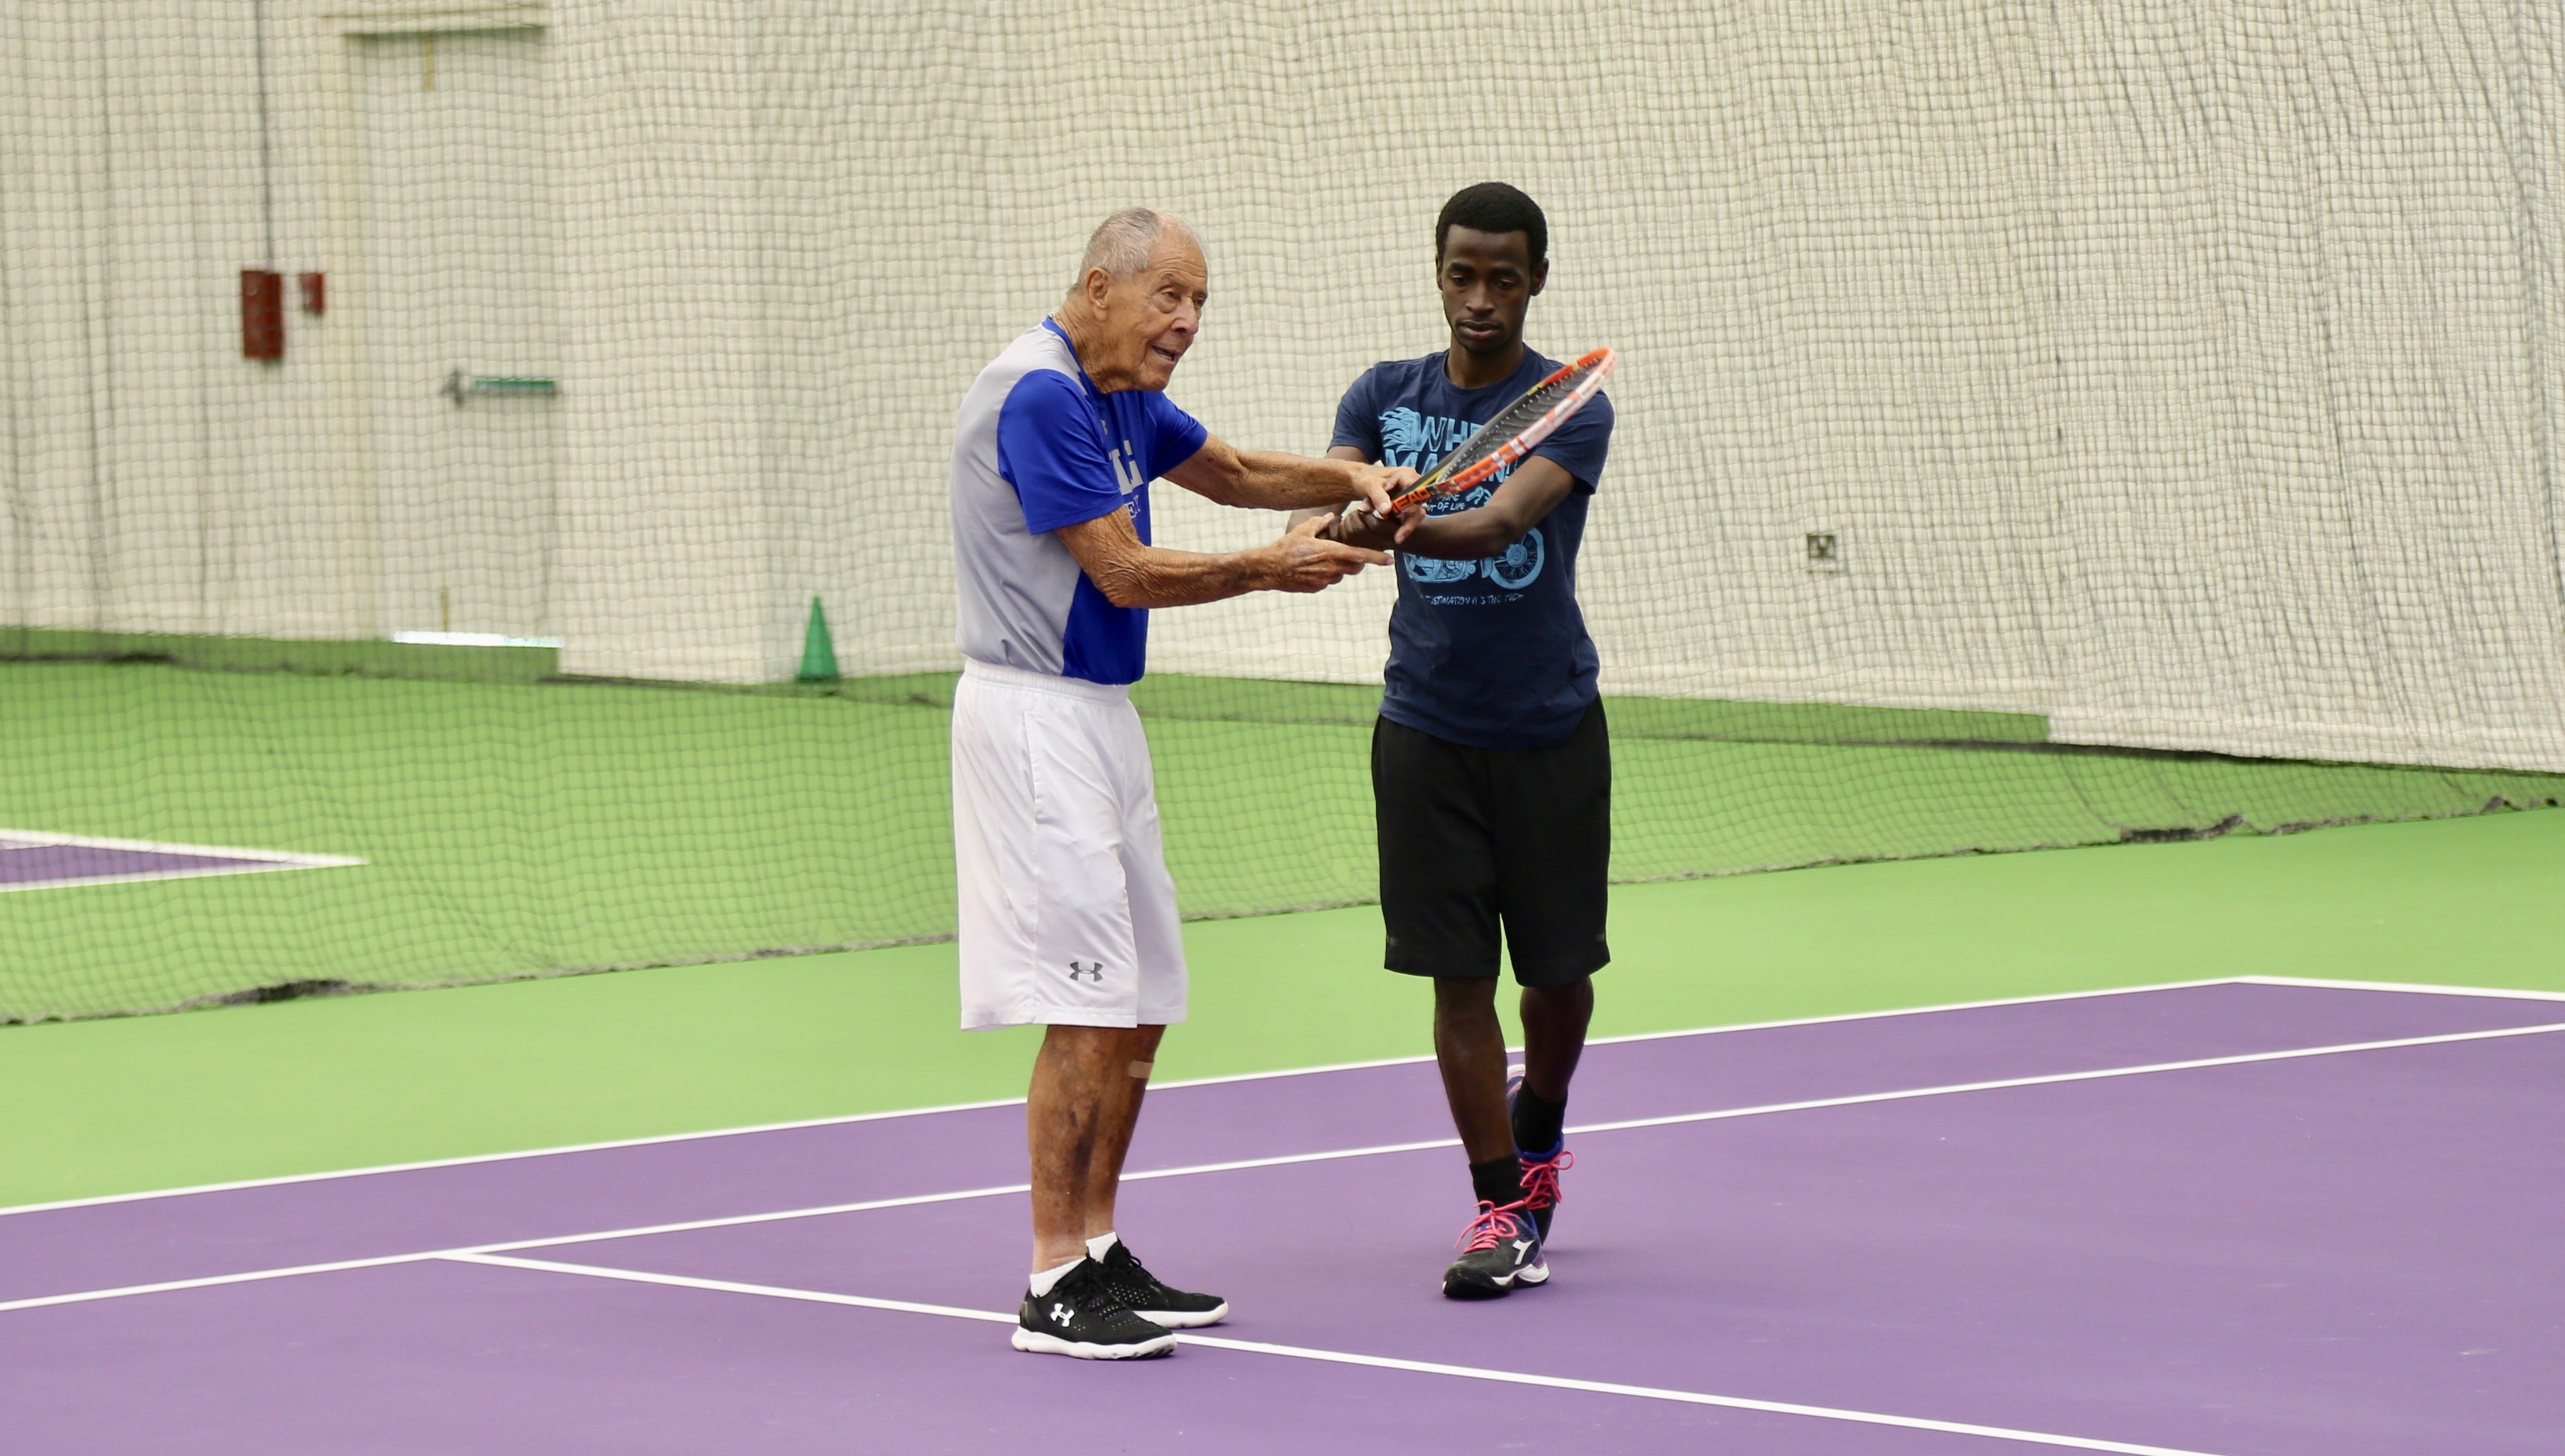 Tennis Legend Nick Bollettieri visits Doha